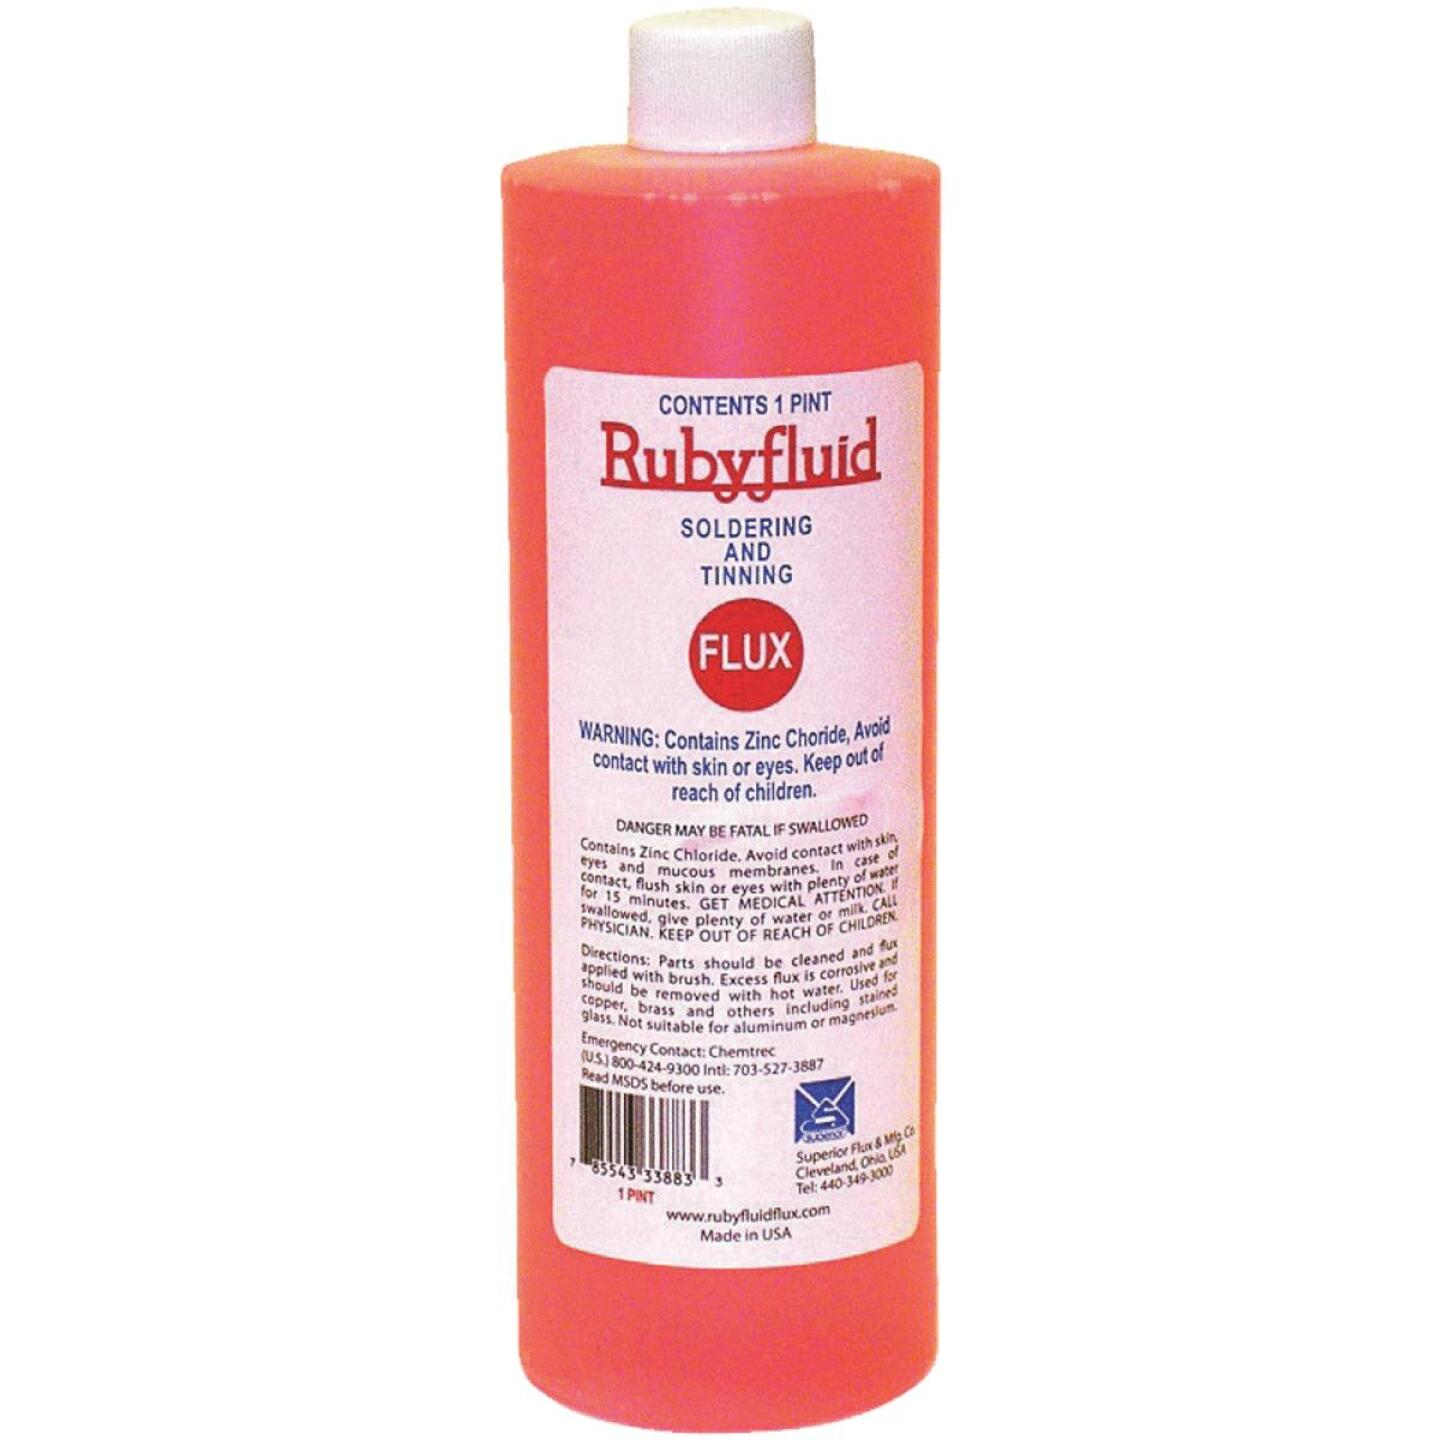 Superior Flux Rubyfluid 16 Oz. Soldering Flux, Liquid Image 1